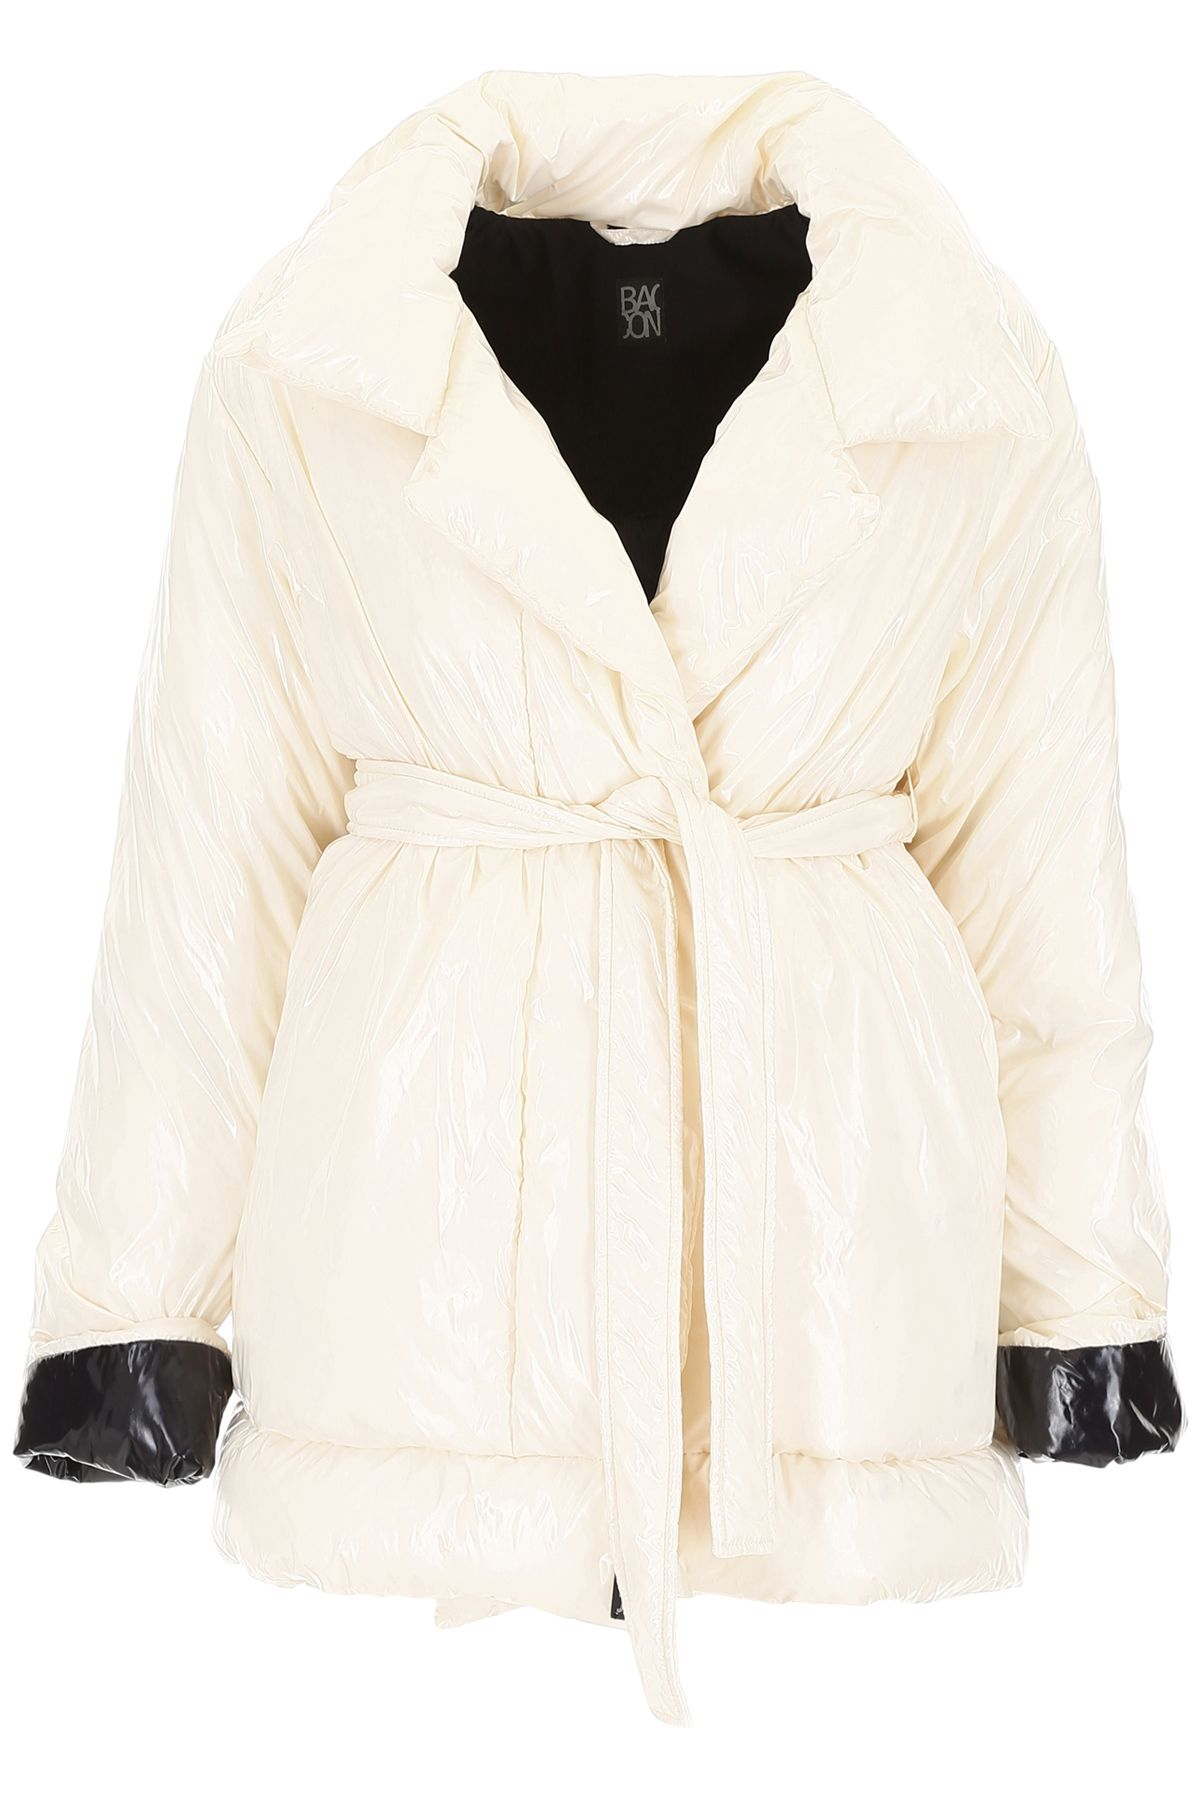 BACON CLOTHING Belted Puffer Jacket in Deep Beige